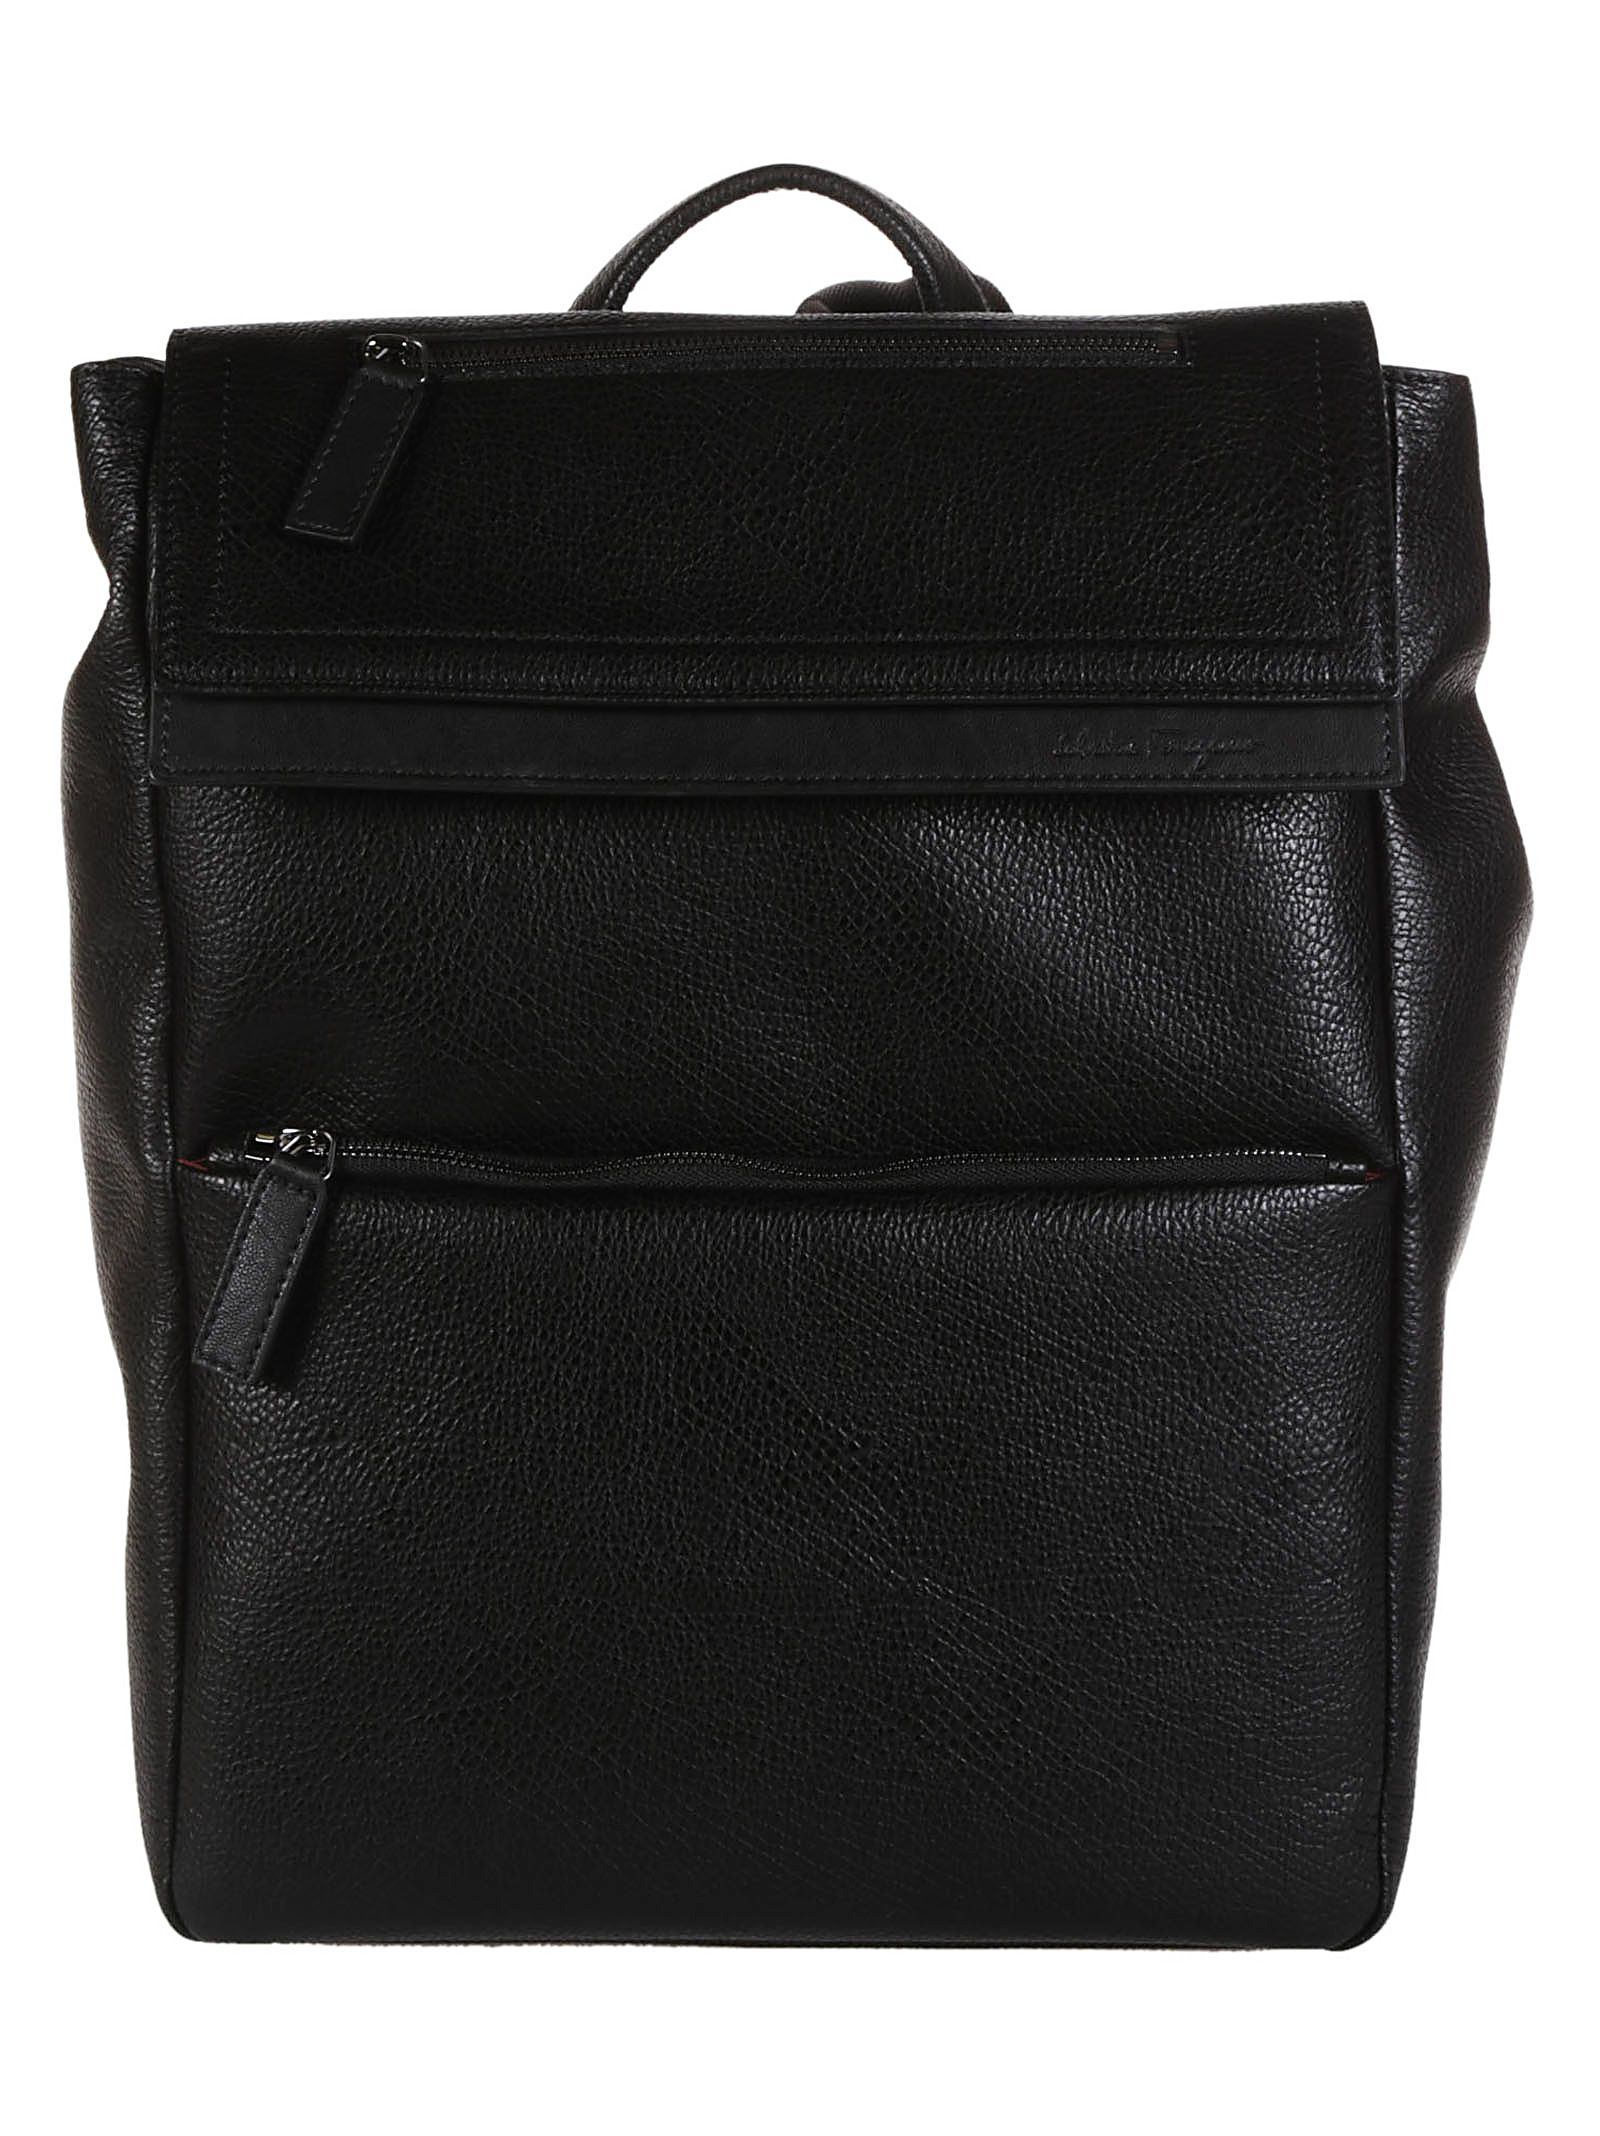 Salvatore Ferragamo Foldover Top Backpack